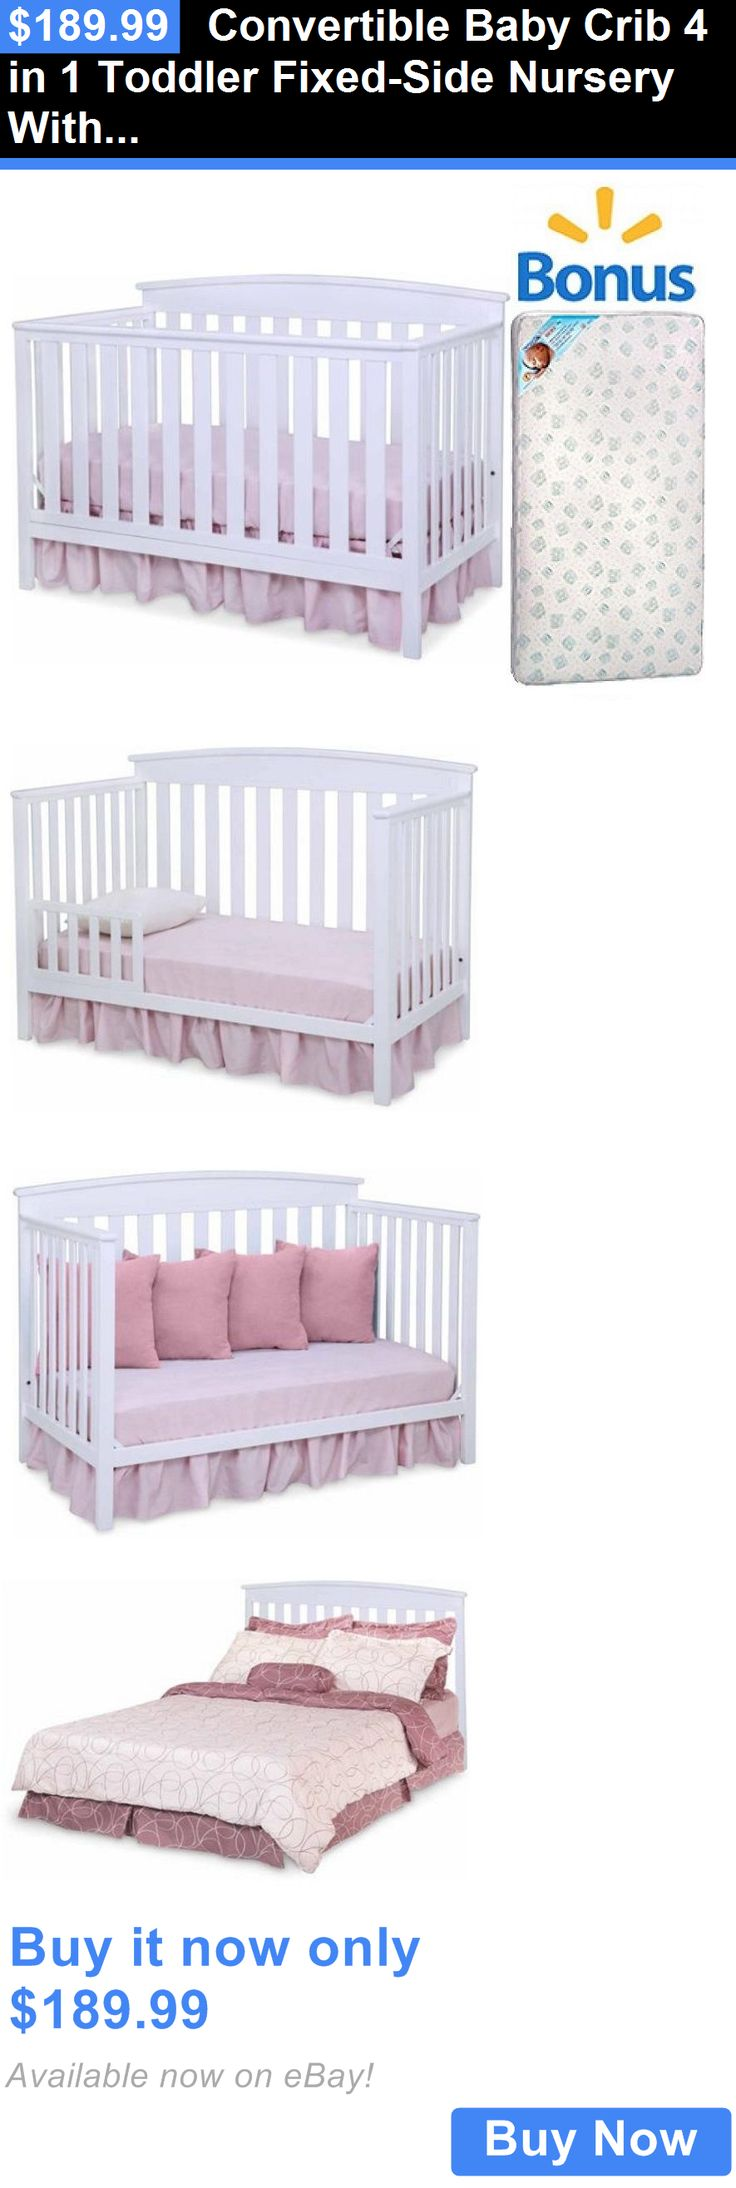 Baby crib youth bed - Baby Nursery Convertible Baby Crib 4 In 1 Toddler Fixed Side Nursery With Bonus